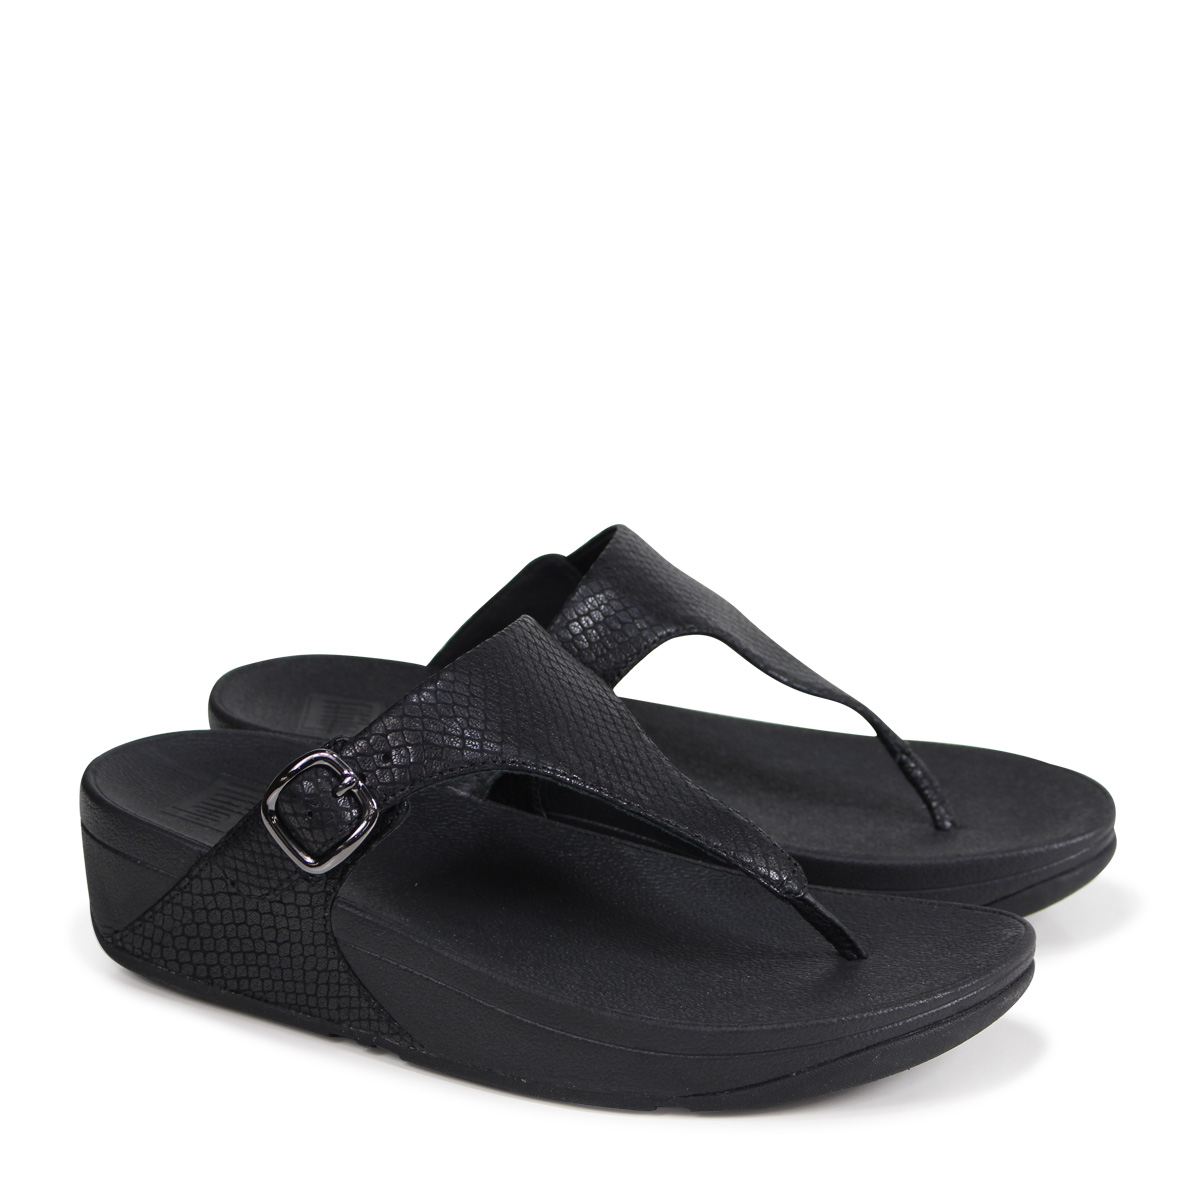 ff08451a90e7 ALLSPORTS  FitFlop THE SKINNY SNAKE EMBOSSED LEATHER TOE-THONG ...